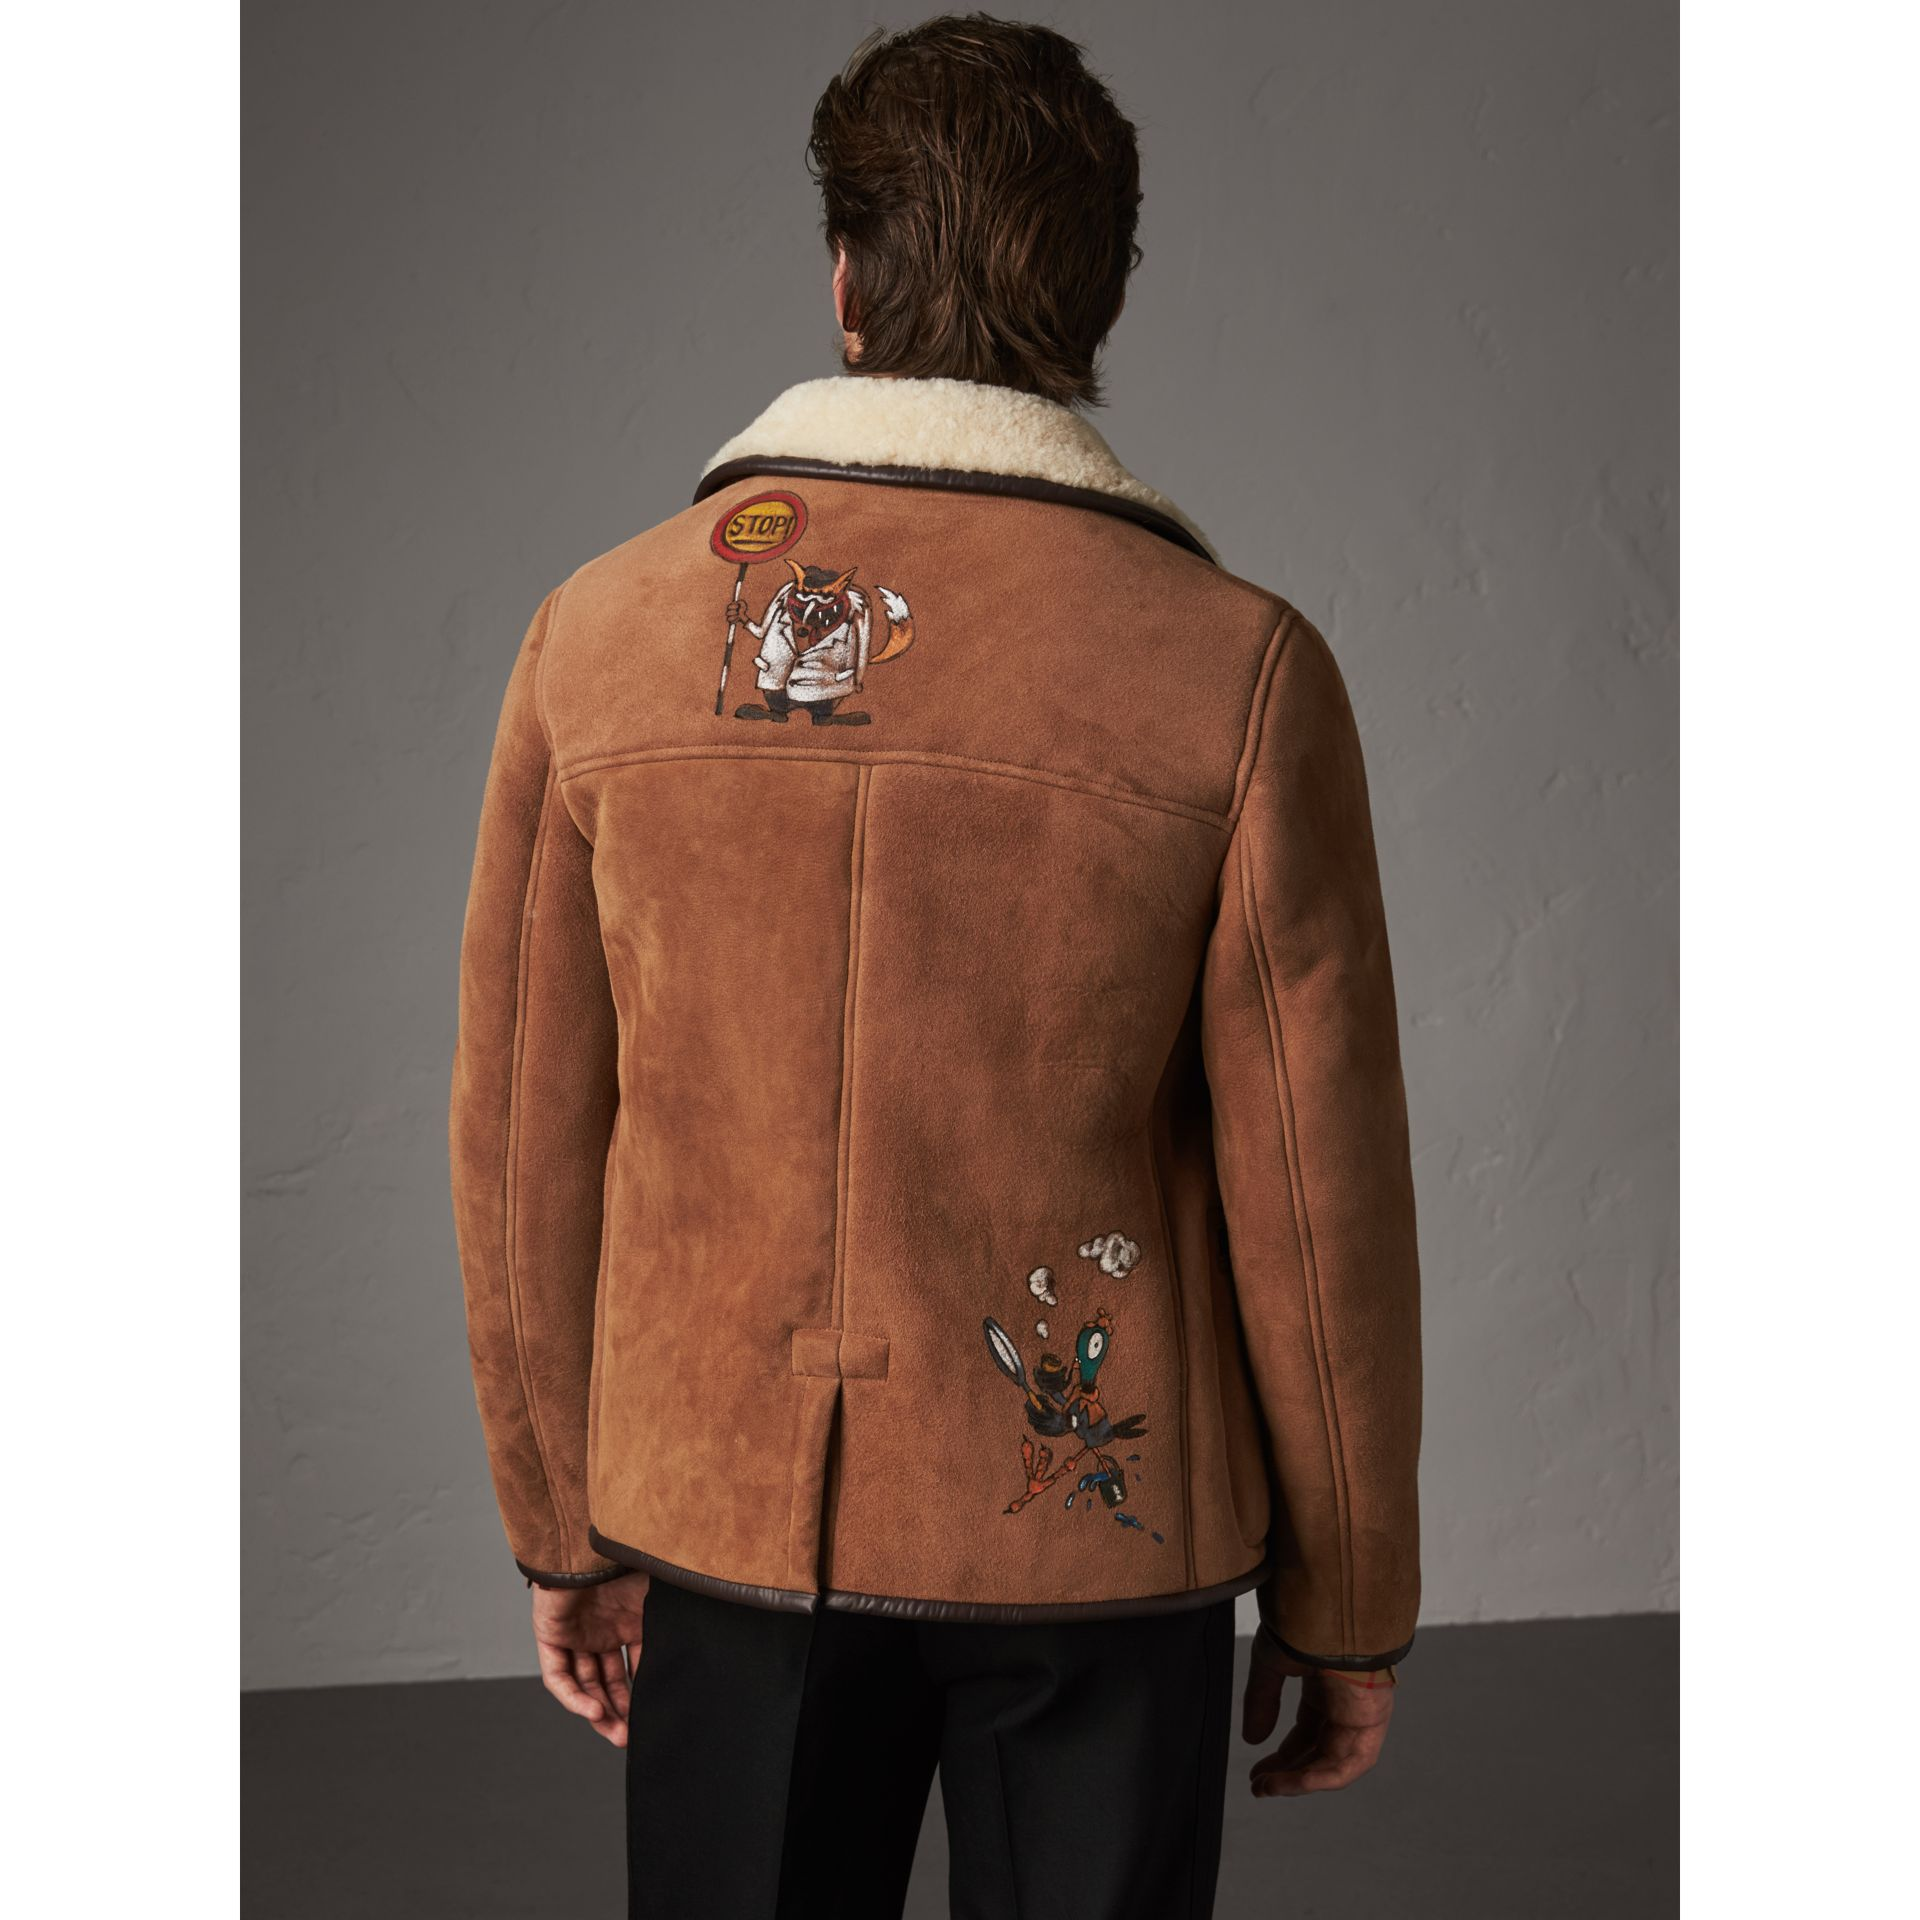 Sketch Print Shearling Jacket in Biscuit - Men | Burberry - gallery image 3